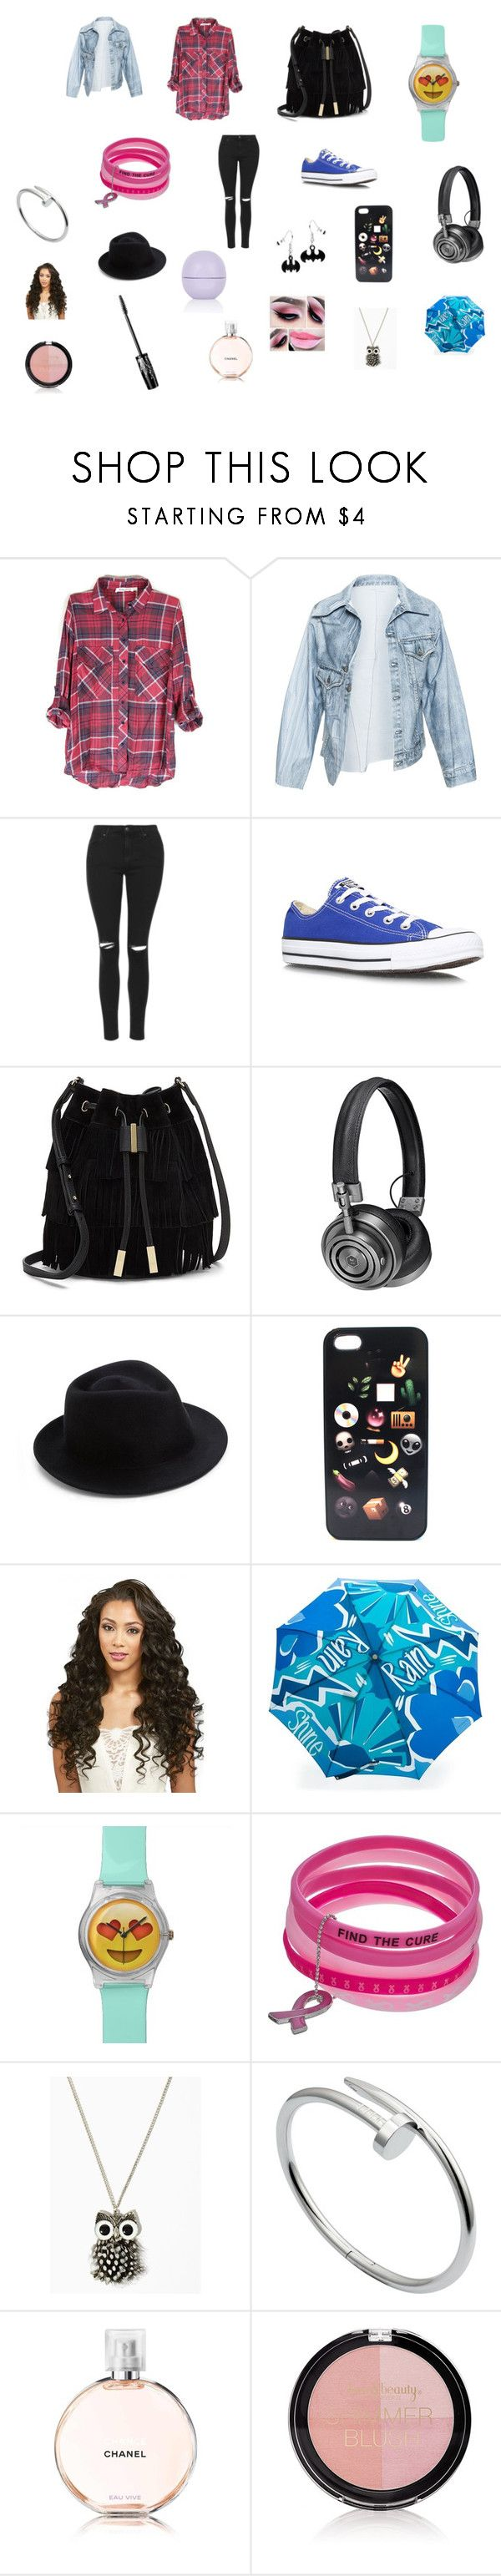 """""""Casual"""" by sarah-blevins on Polyvore featuring Faustine Steinmetz, Topshop, Converse, Vince Camuto, Master & Dynamic, Eugenia Kim, Burberry, Cartier and Forever 21"""